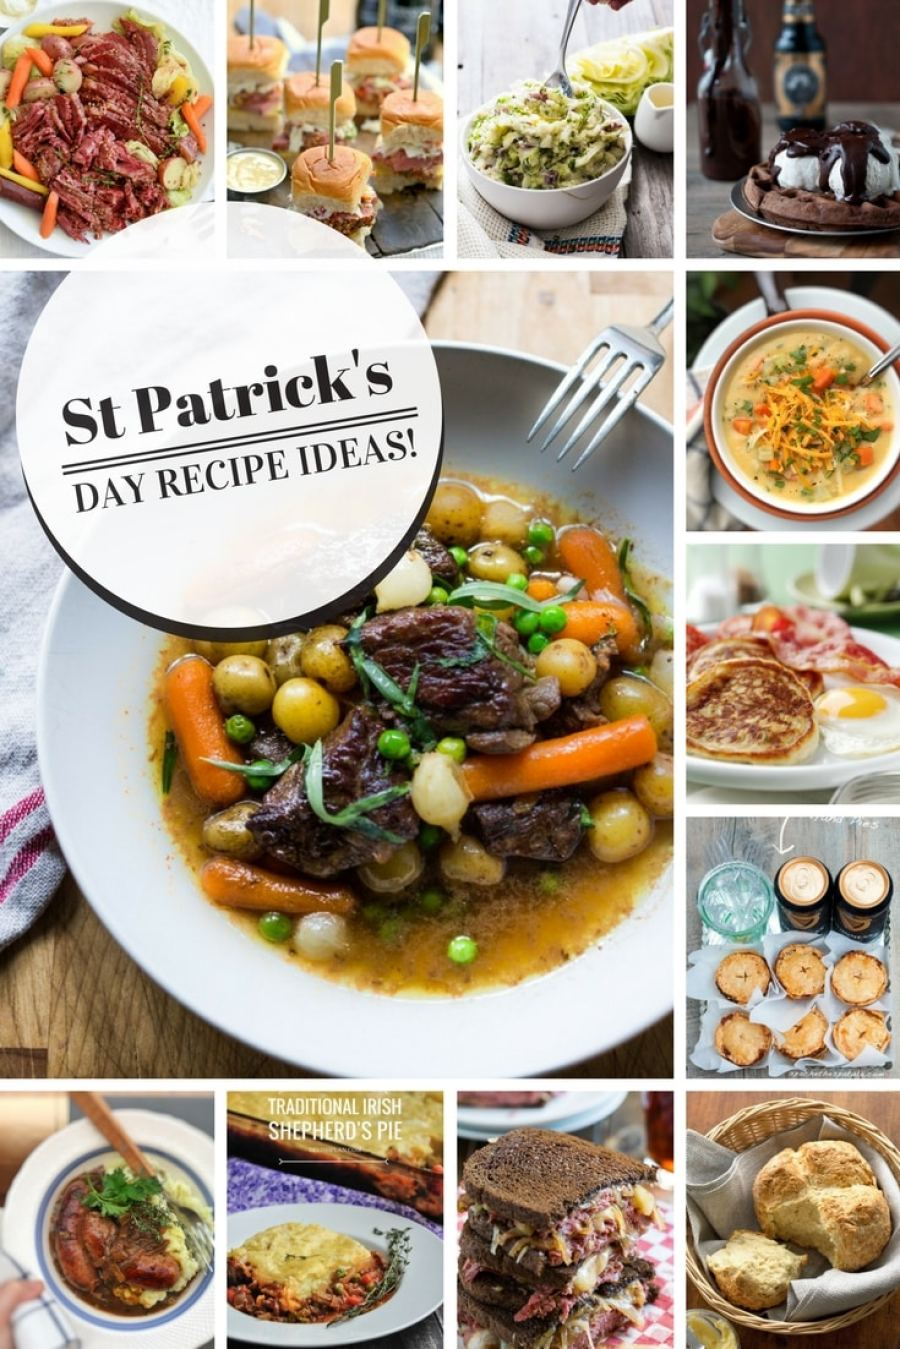 March 17, here we are again! Hunting for St Patrick's Day recipes and other delicious ideas as always. I truly hope that I can be of some help to you this year!